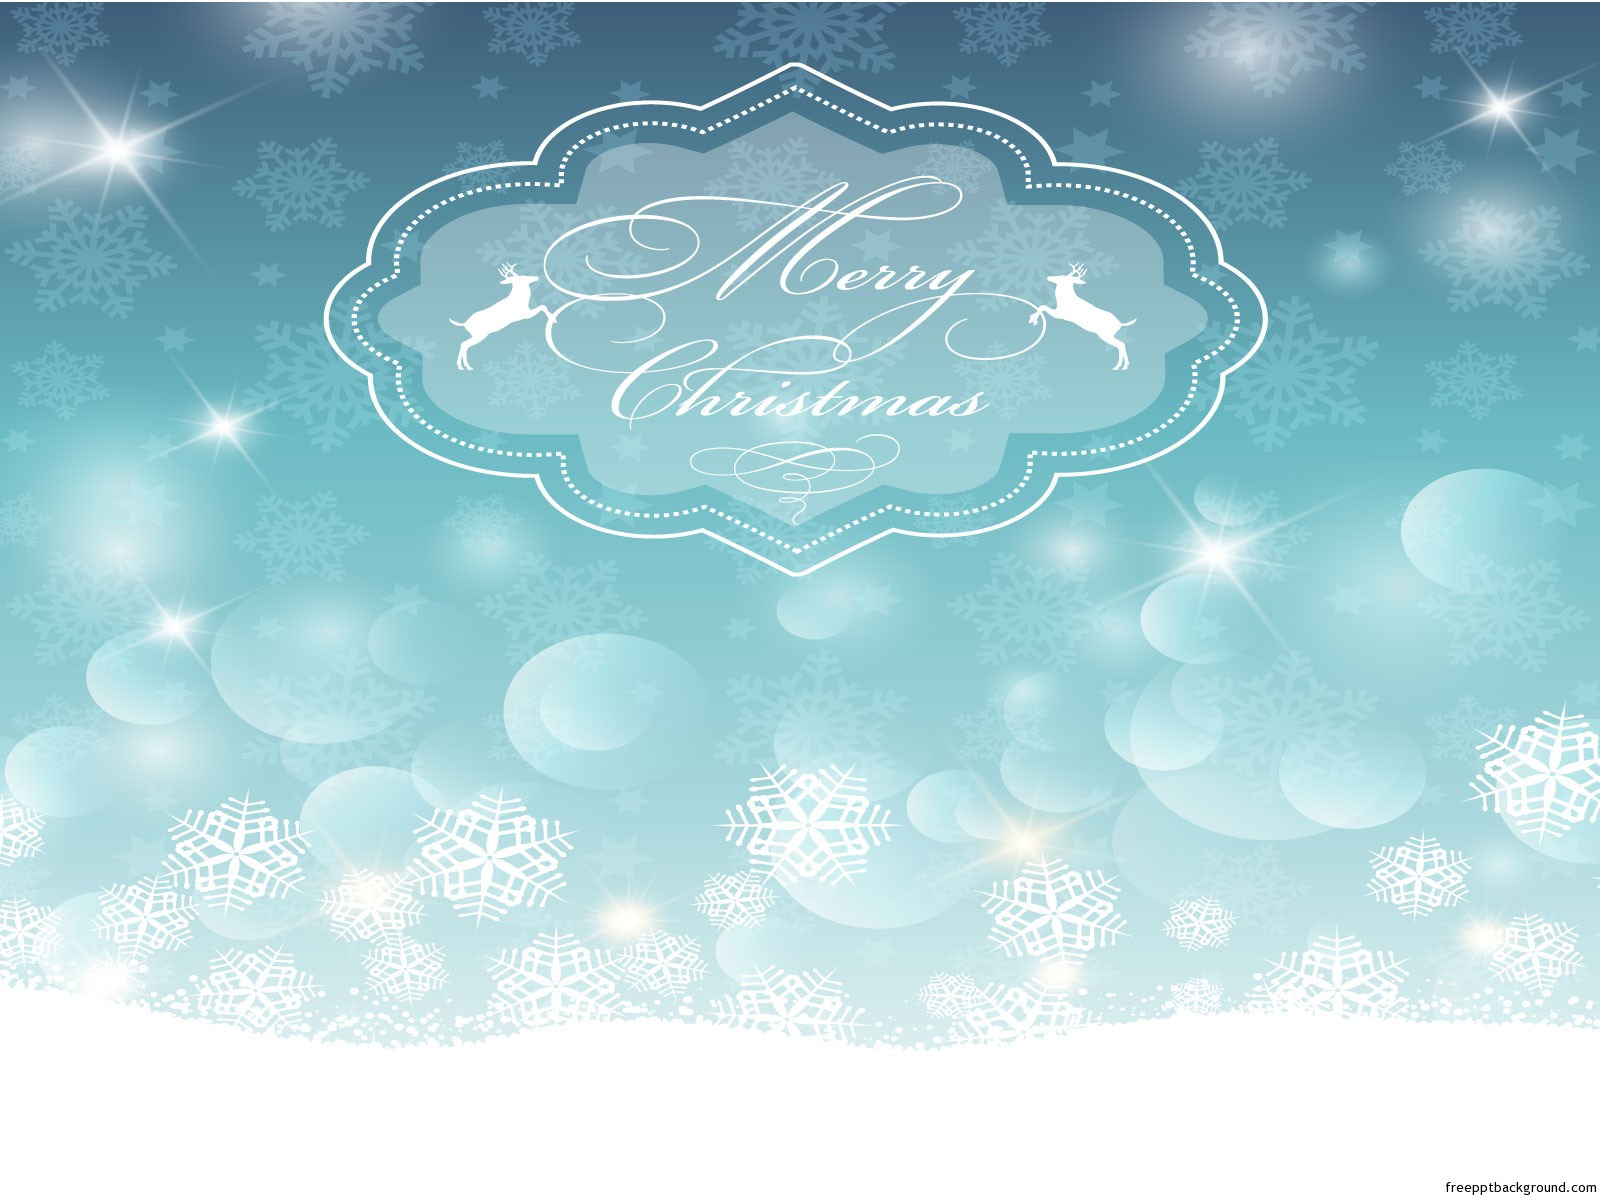 ppt backgrounds backgrounds for powerpoint templates merry christmas template